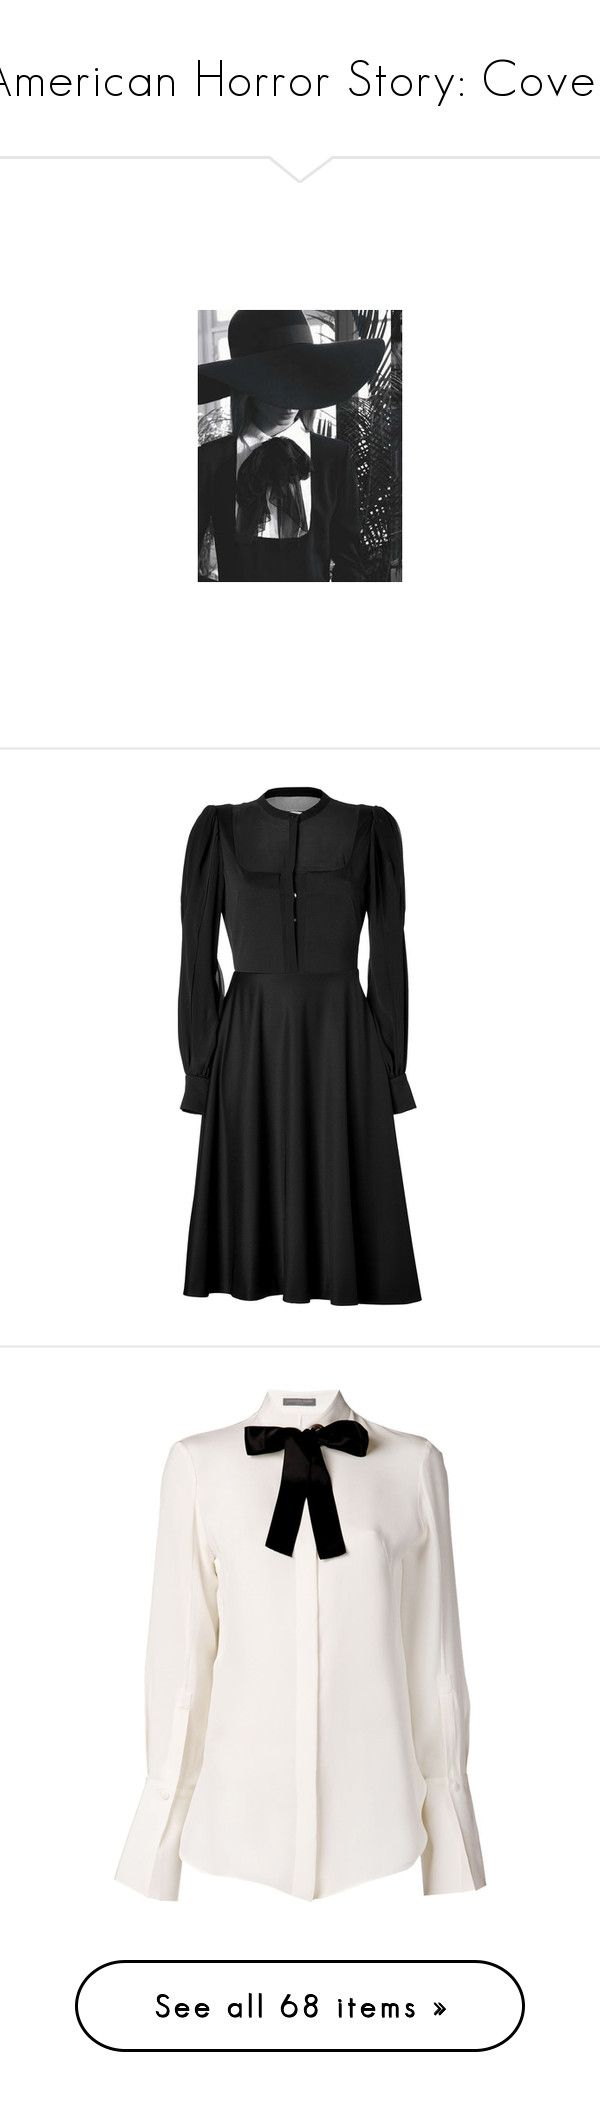 """""""American Horror Story: Coven"""" by bitbyacullen ❤ liked on Polyvore featuring dresses, vestidos, philosophy di alberta ferretti dress, puffy sleeve dress, glamorous dresses, sheer long sleeve dress, long puff sleeve dress, tops, blouses and shirts"""